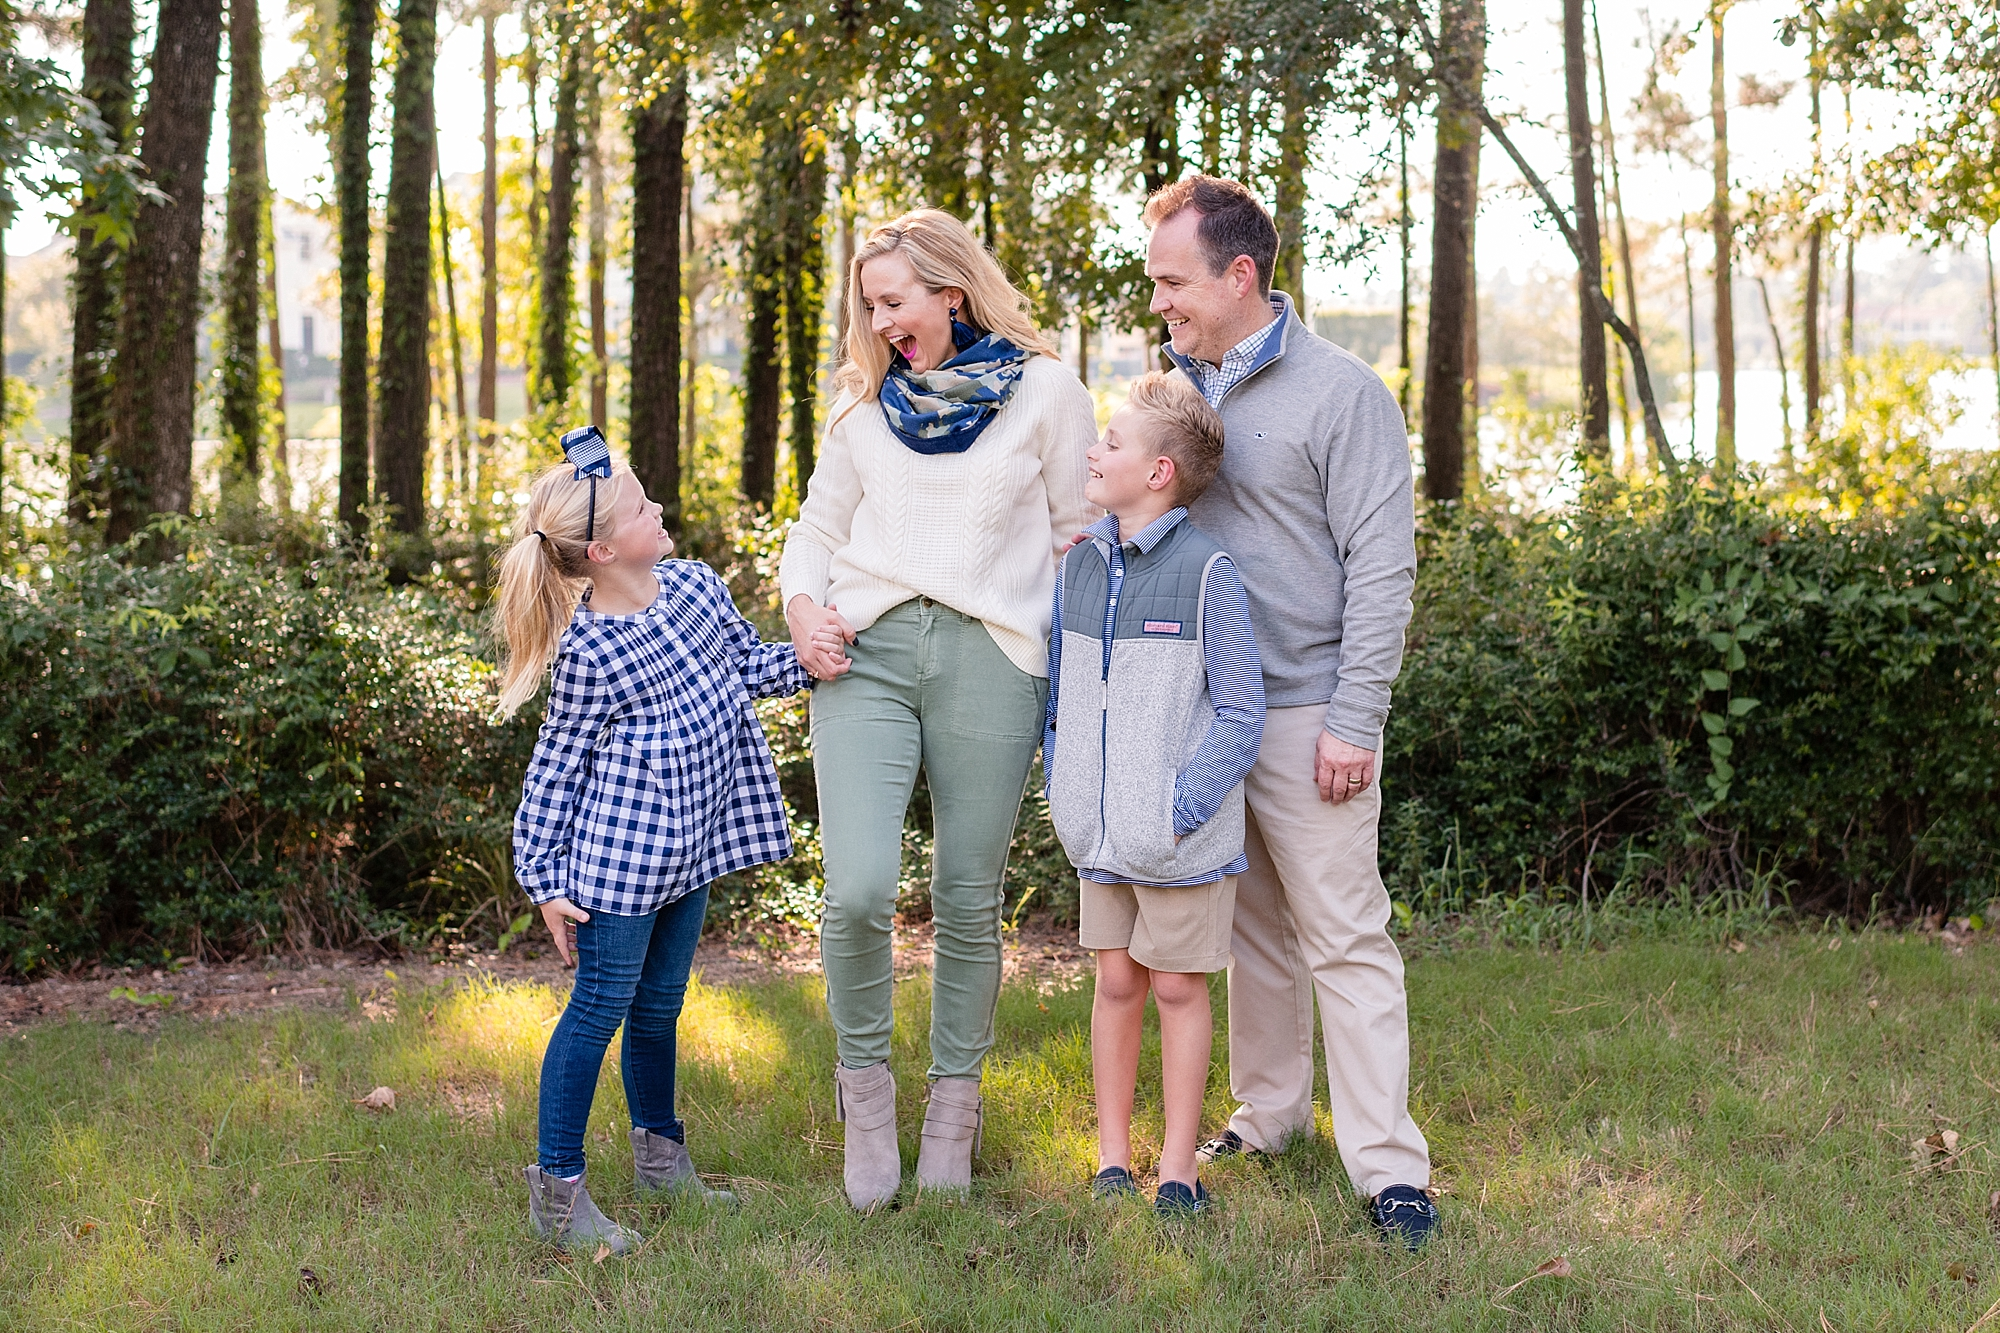 Friday Favorites featured by popular Houston life and style blogger, Fancy Ashley: Fall family pictures outfits